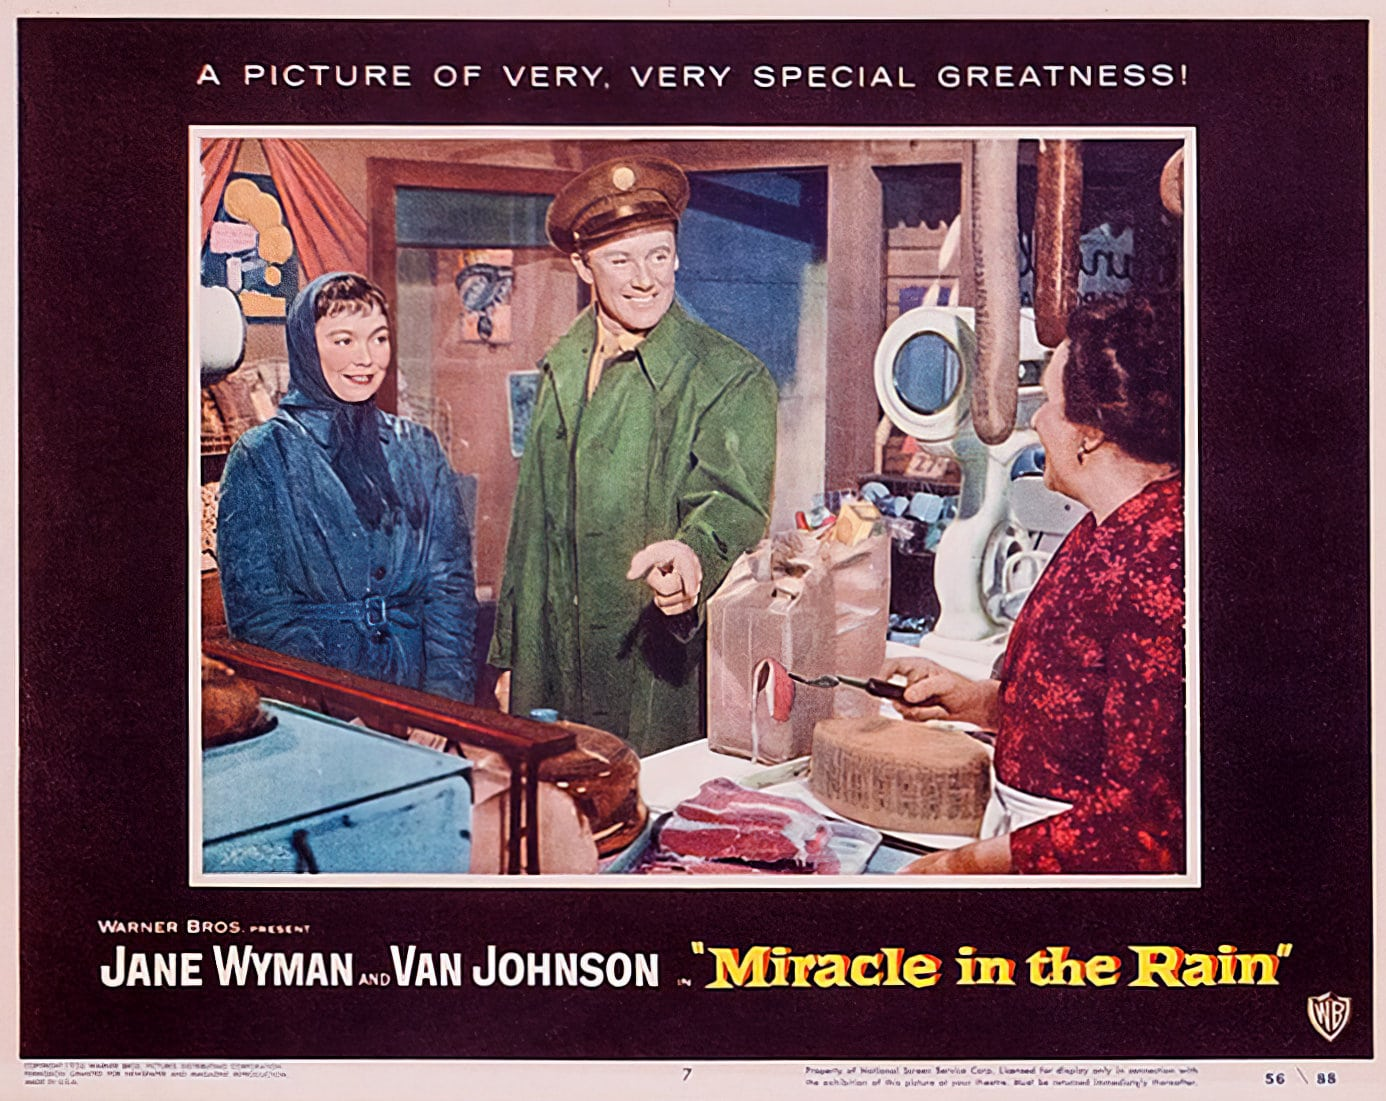 Miracle in the Rain movie lobby posters from 1956 (3)